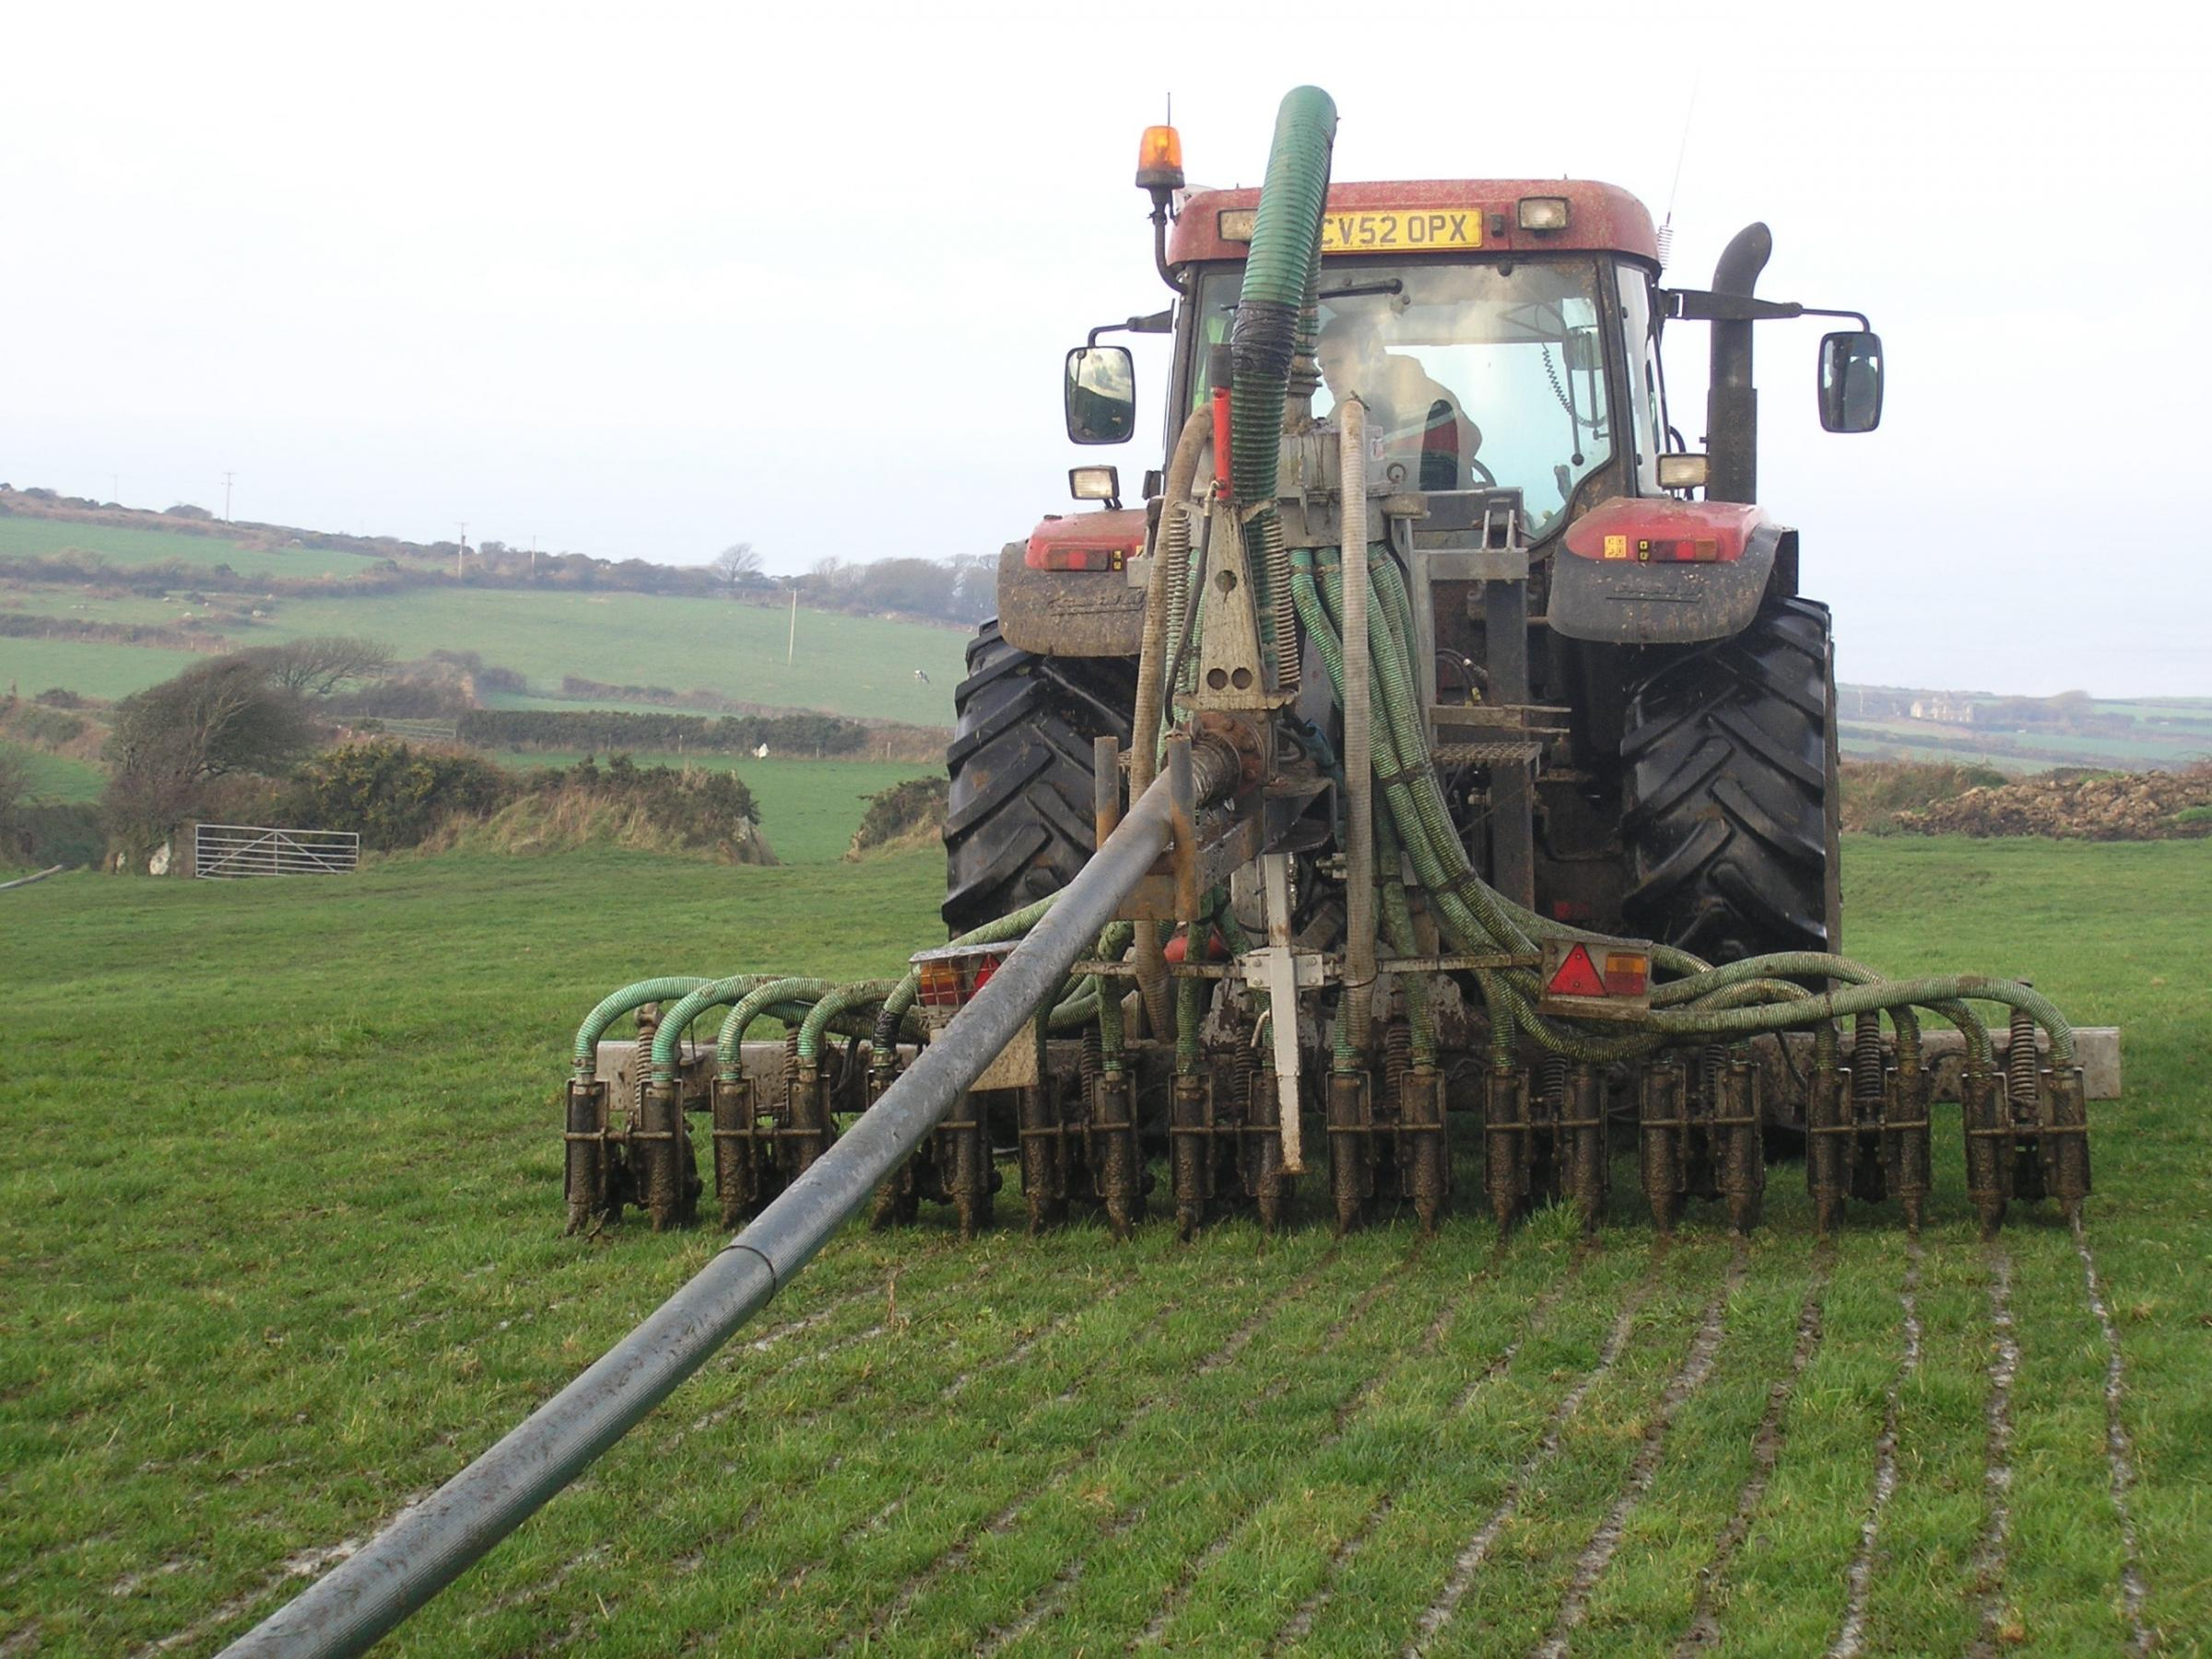 NFU Cymru is working on a farmer-led voluntary initiative to deliver on water quality requirements PICTURE: Debbie James